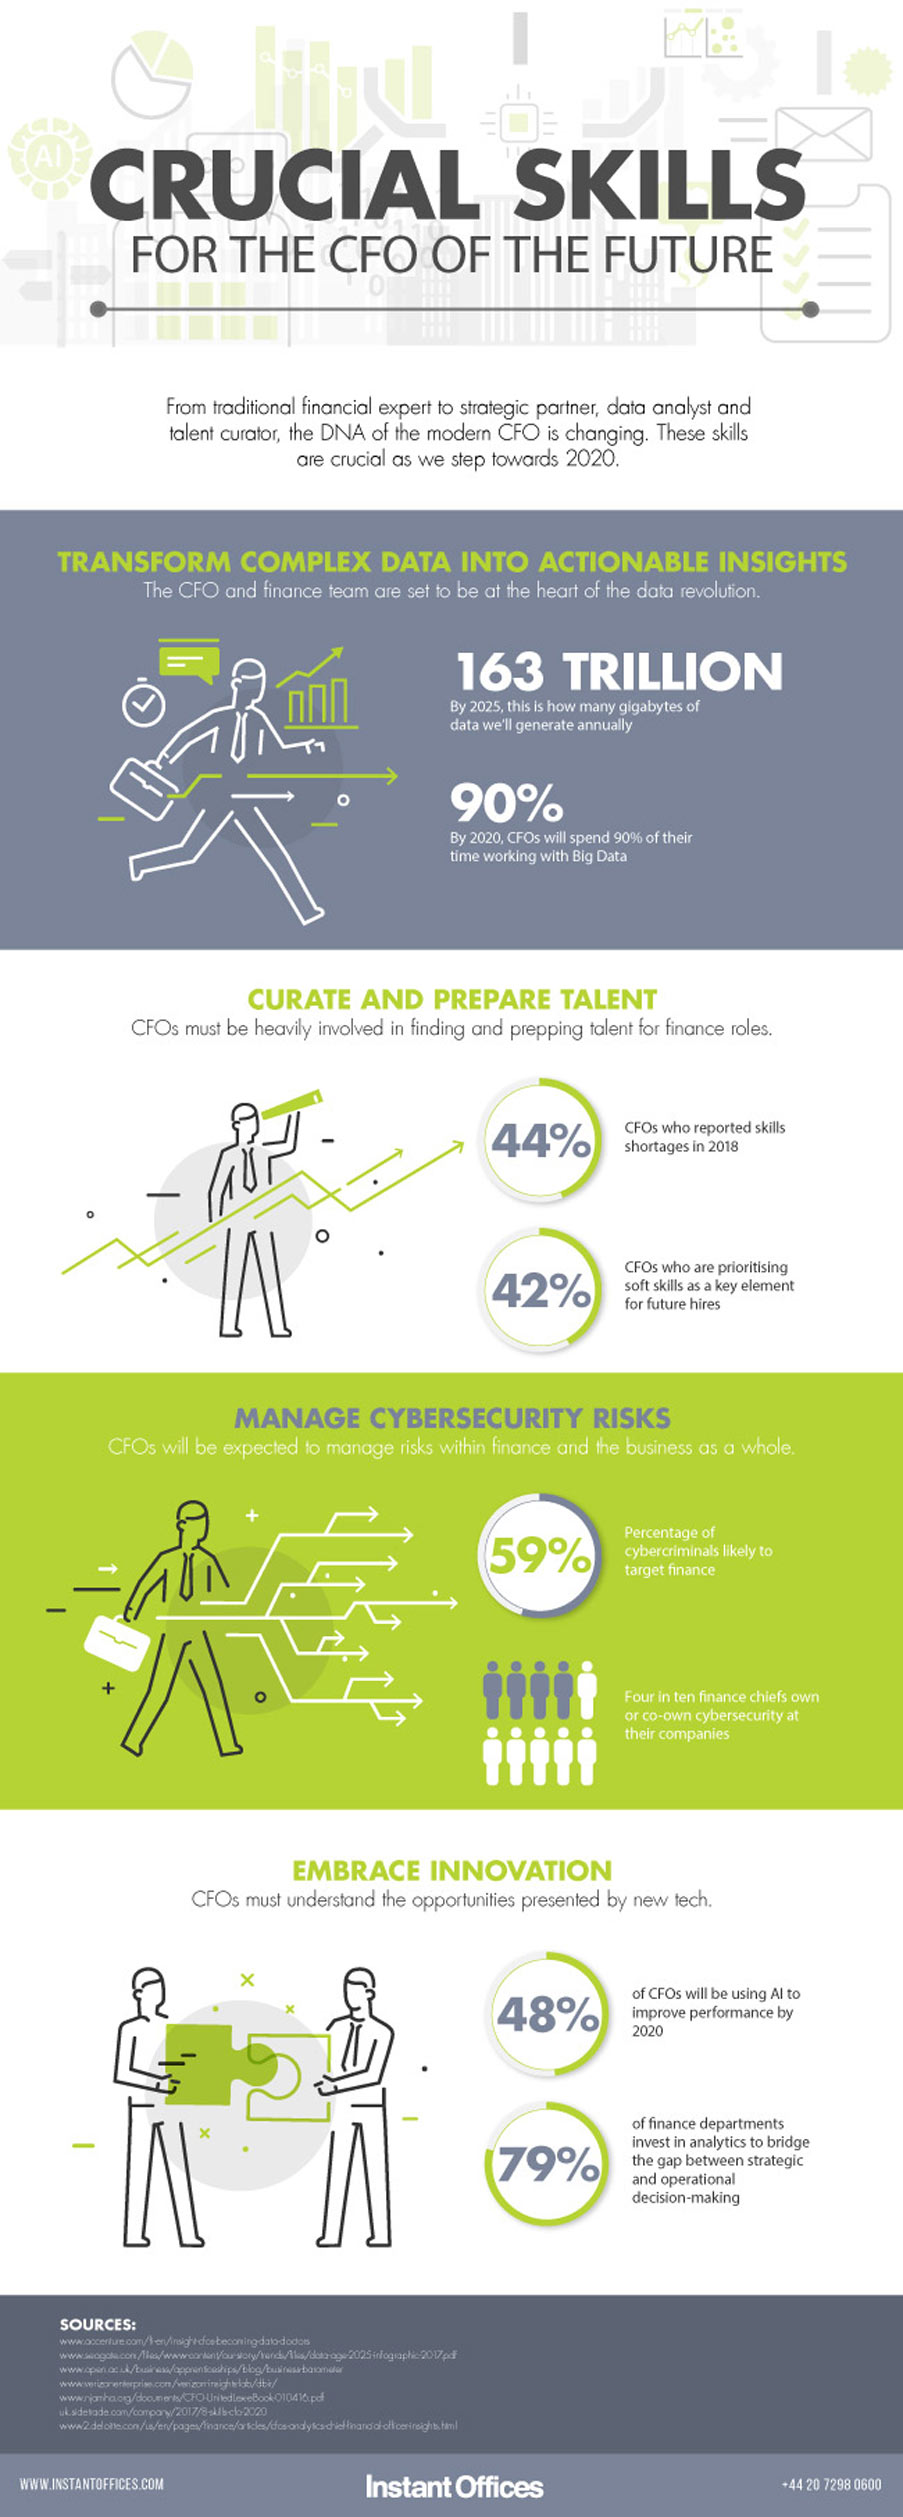 Crucial Skills for the CFO by 2020 - Instant Offices